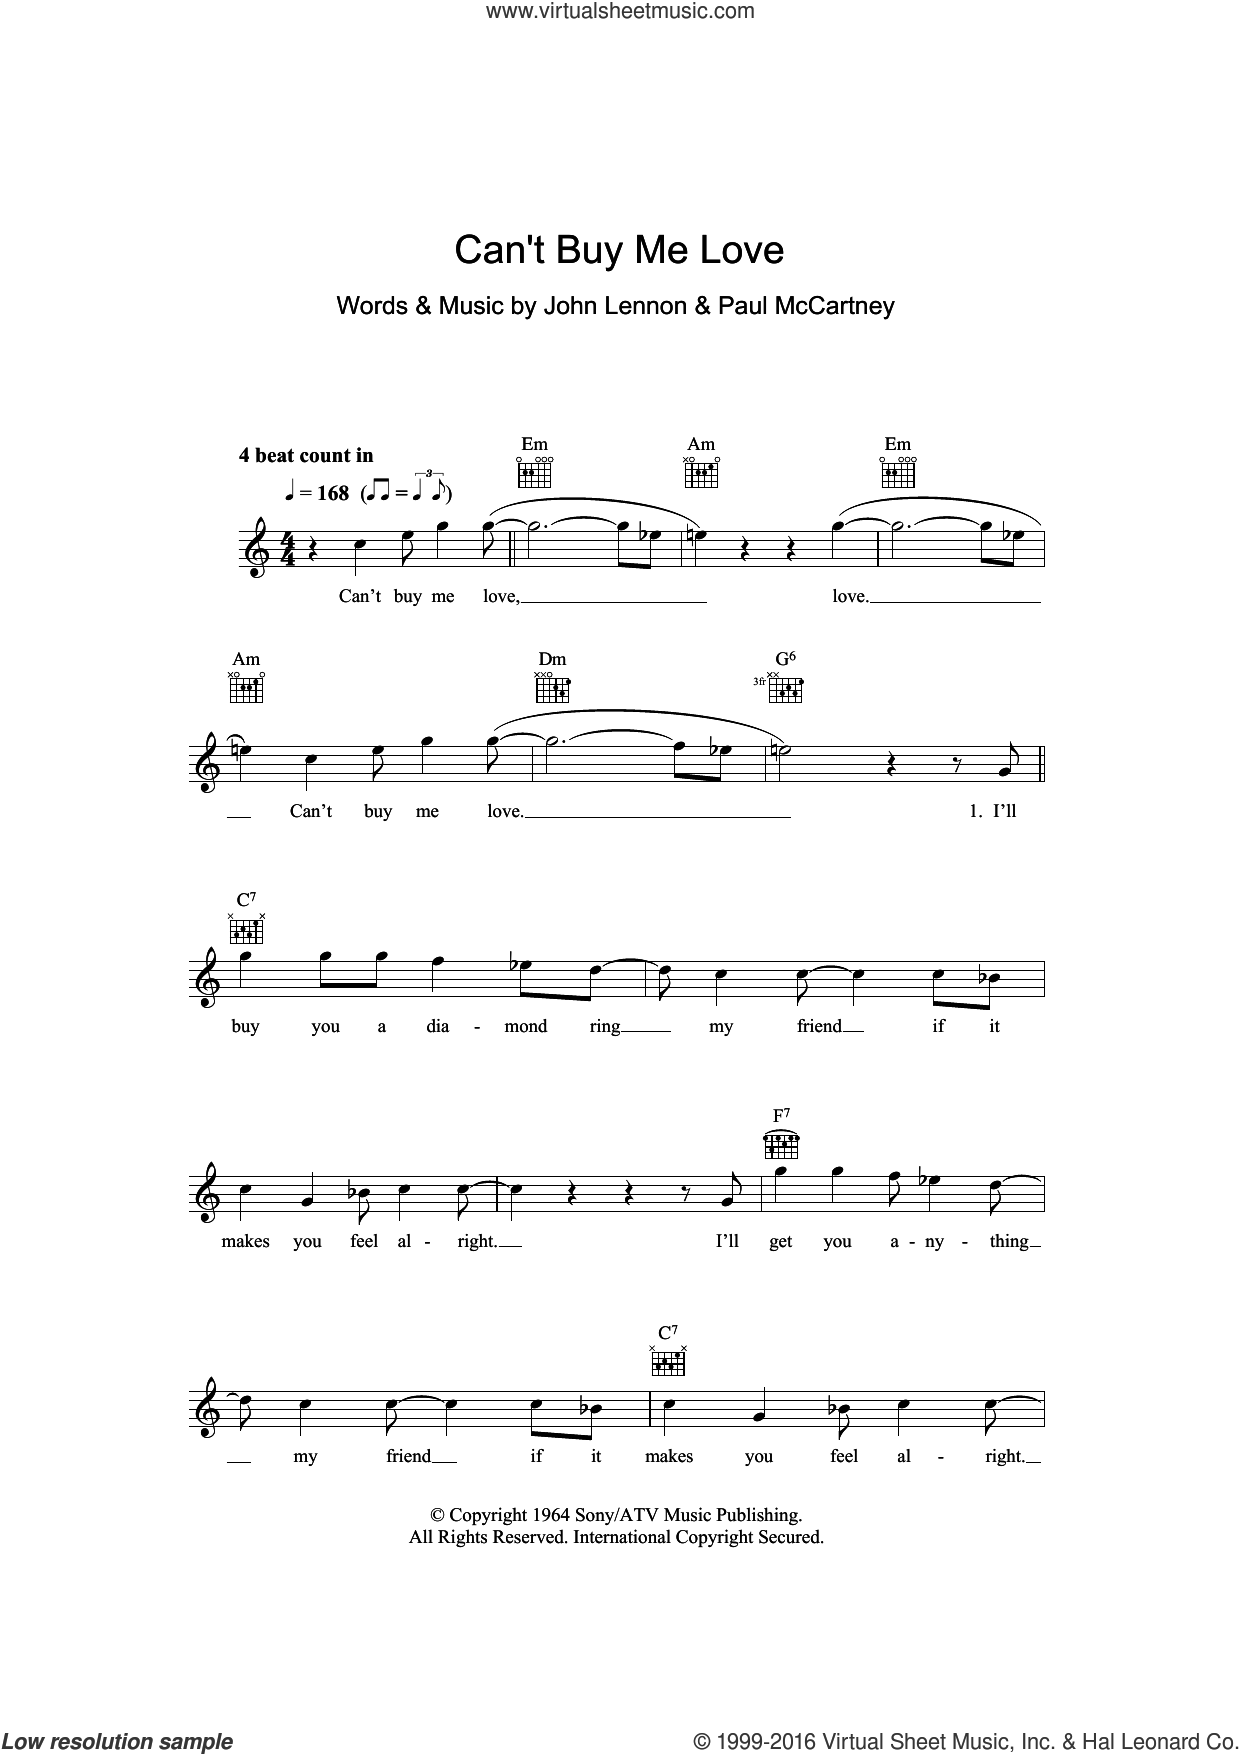 Can't Buy Me Love sheet music for voice and other instruments (fake book) by The Beatles, John Lennon and Paul McCartney, intermediate skill level